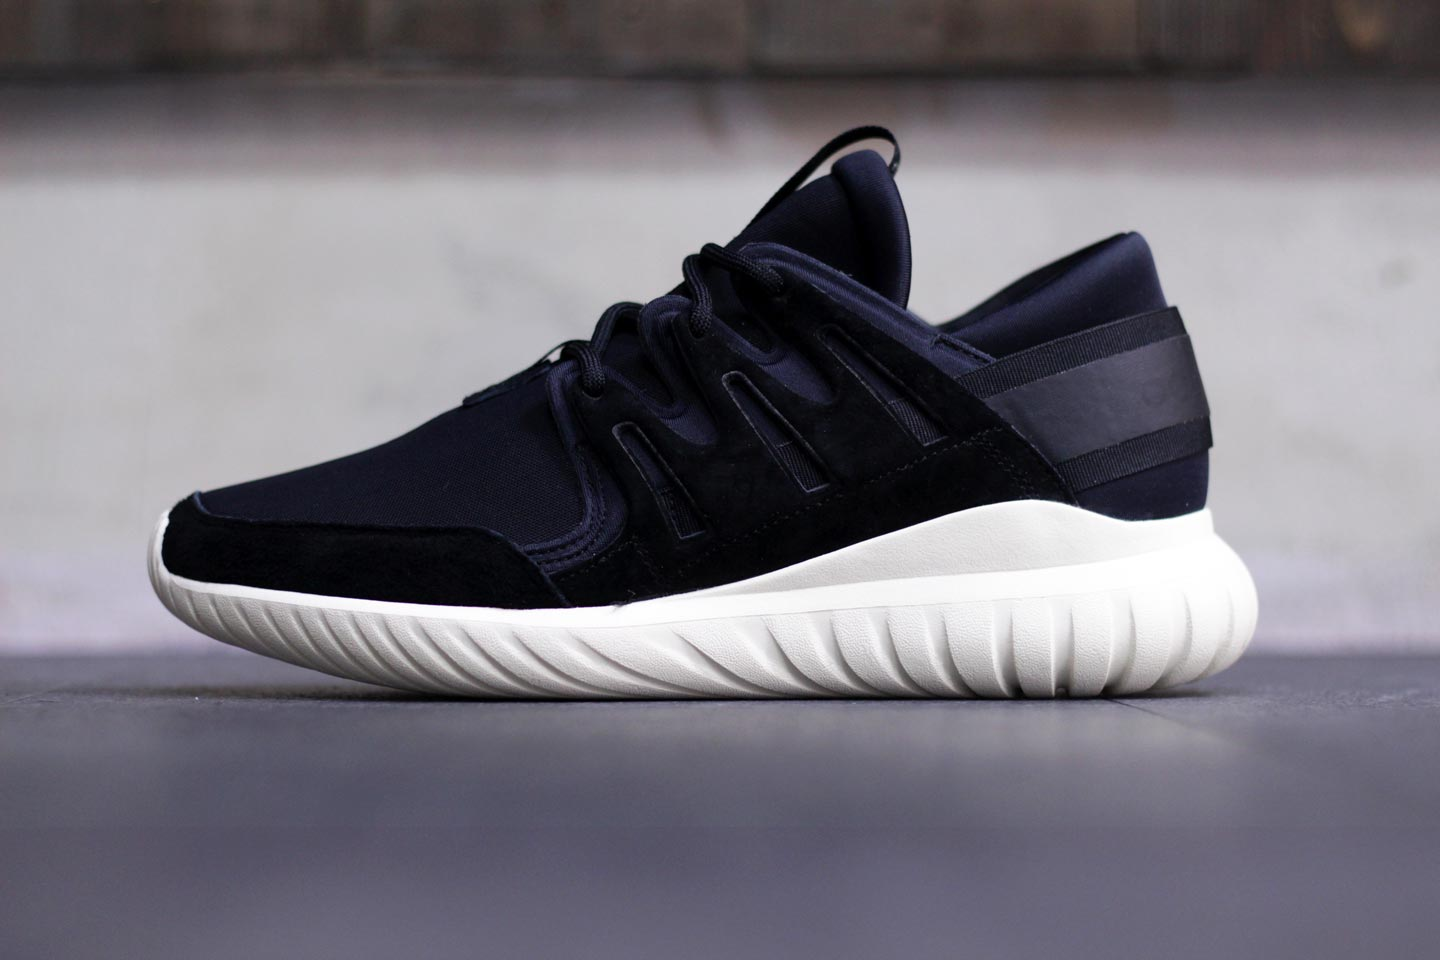 Adidas Originals Tubular Nova PK Gray Sneakers BB 8409 Caliroots